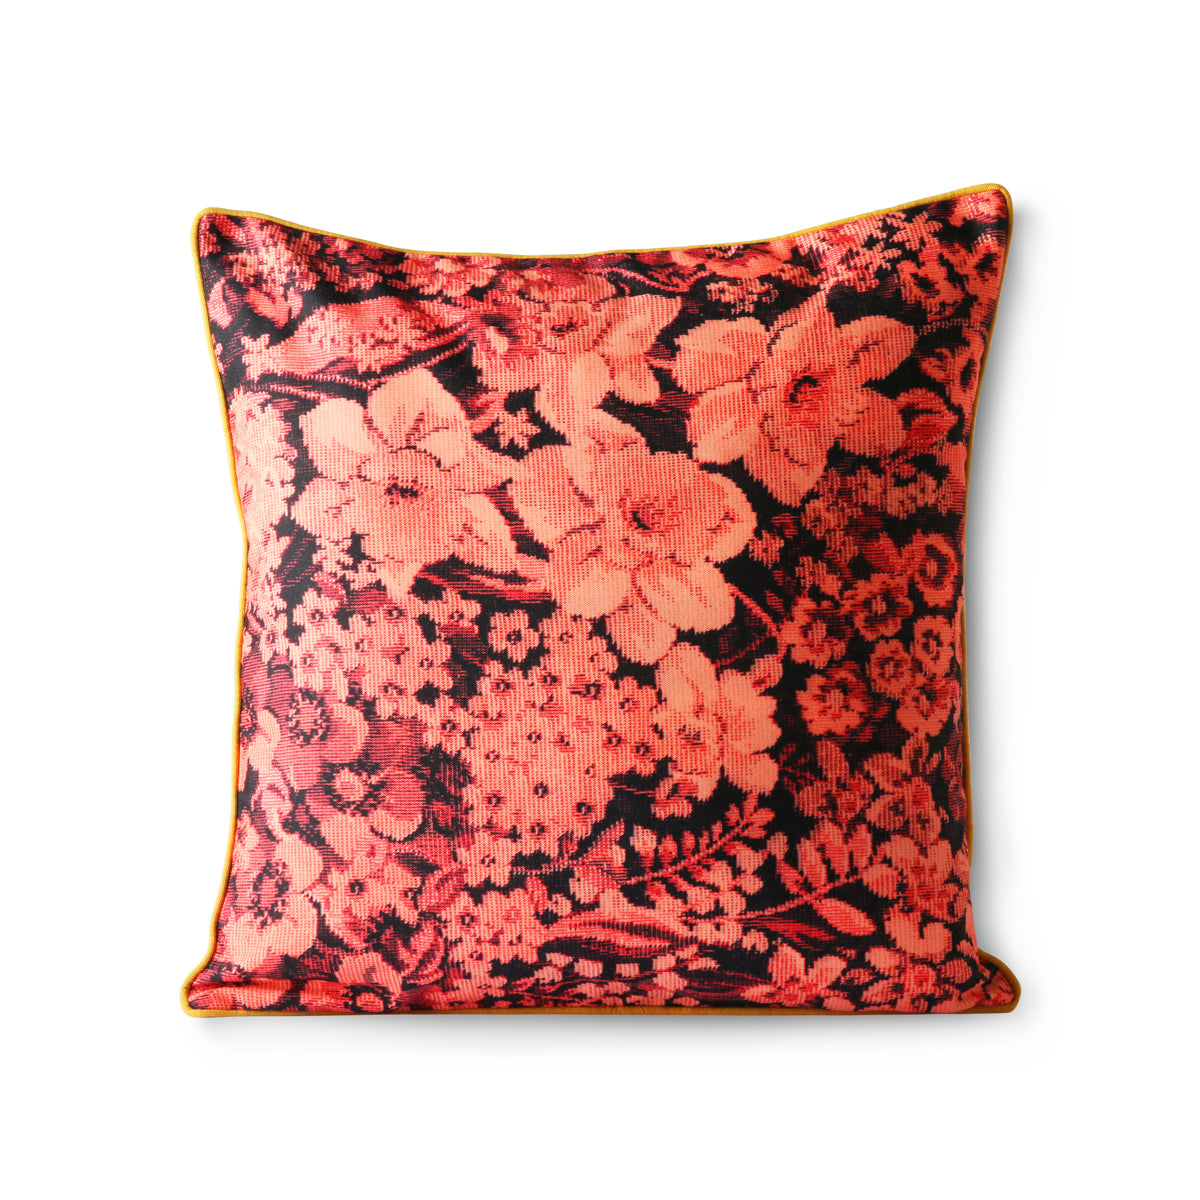 HK Living printed floral cushion coral/black